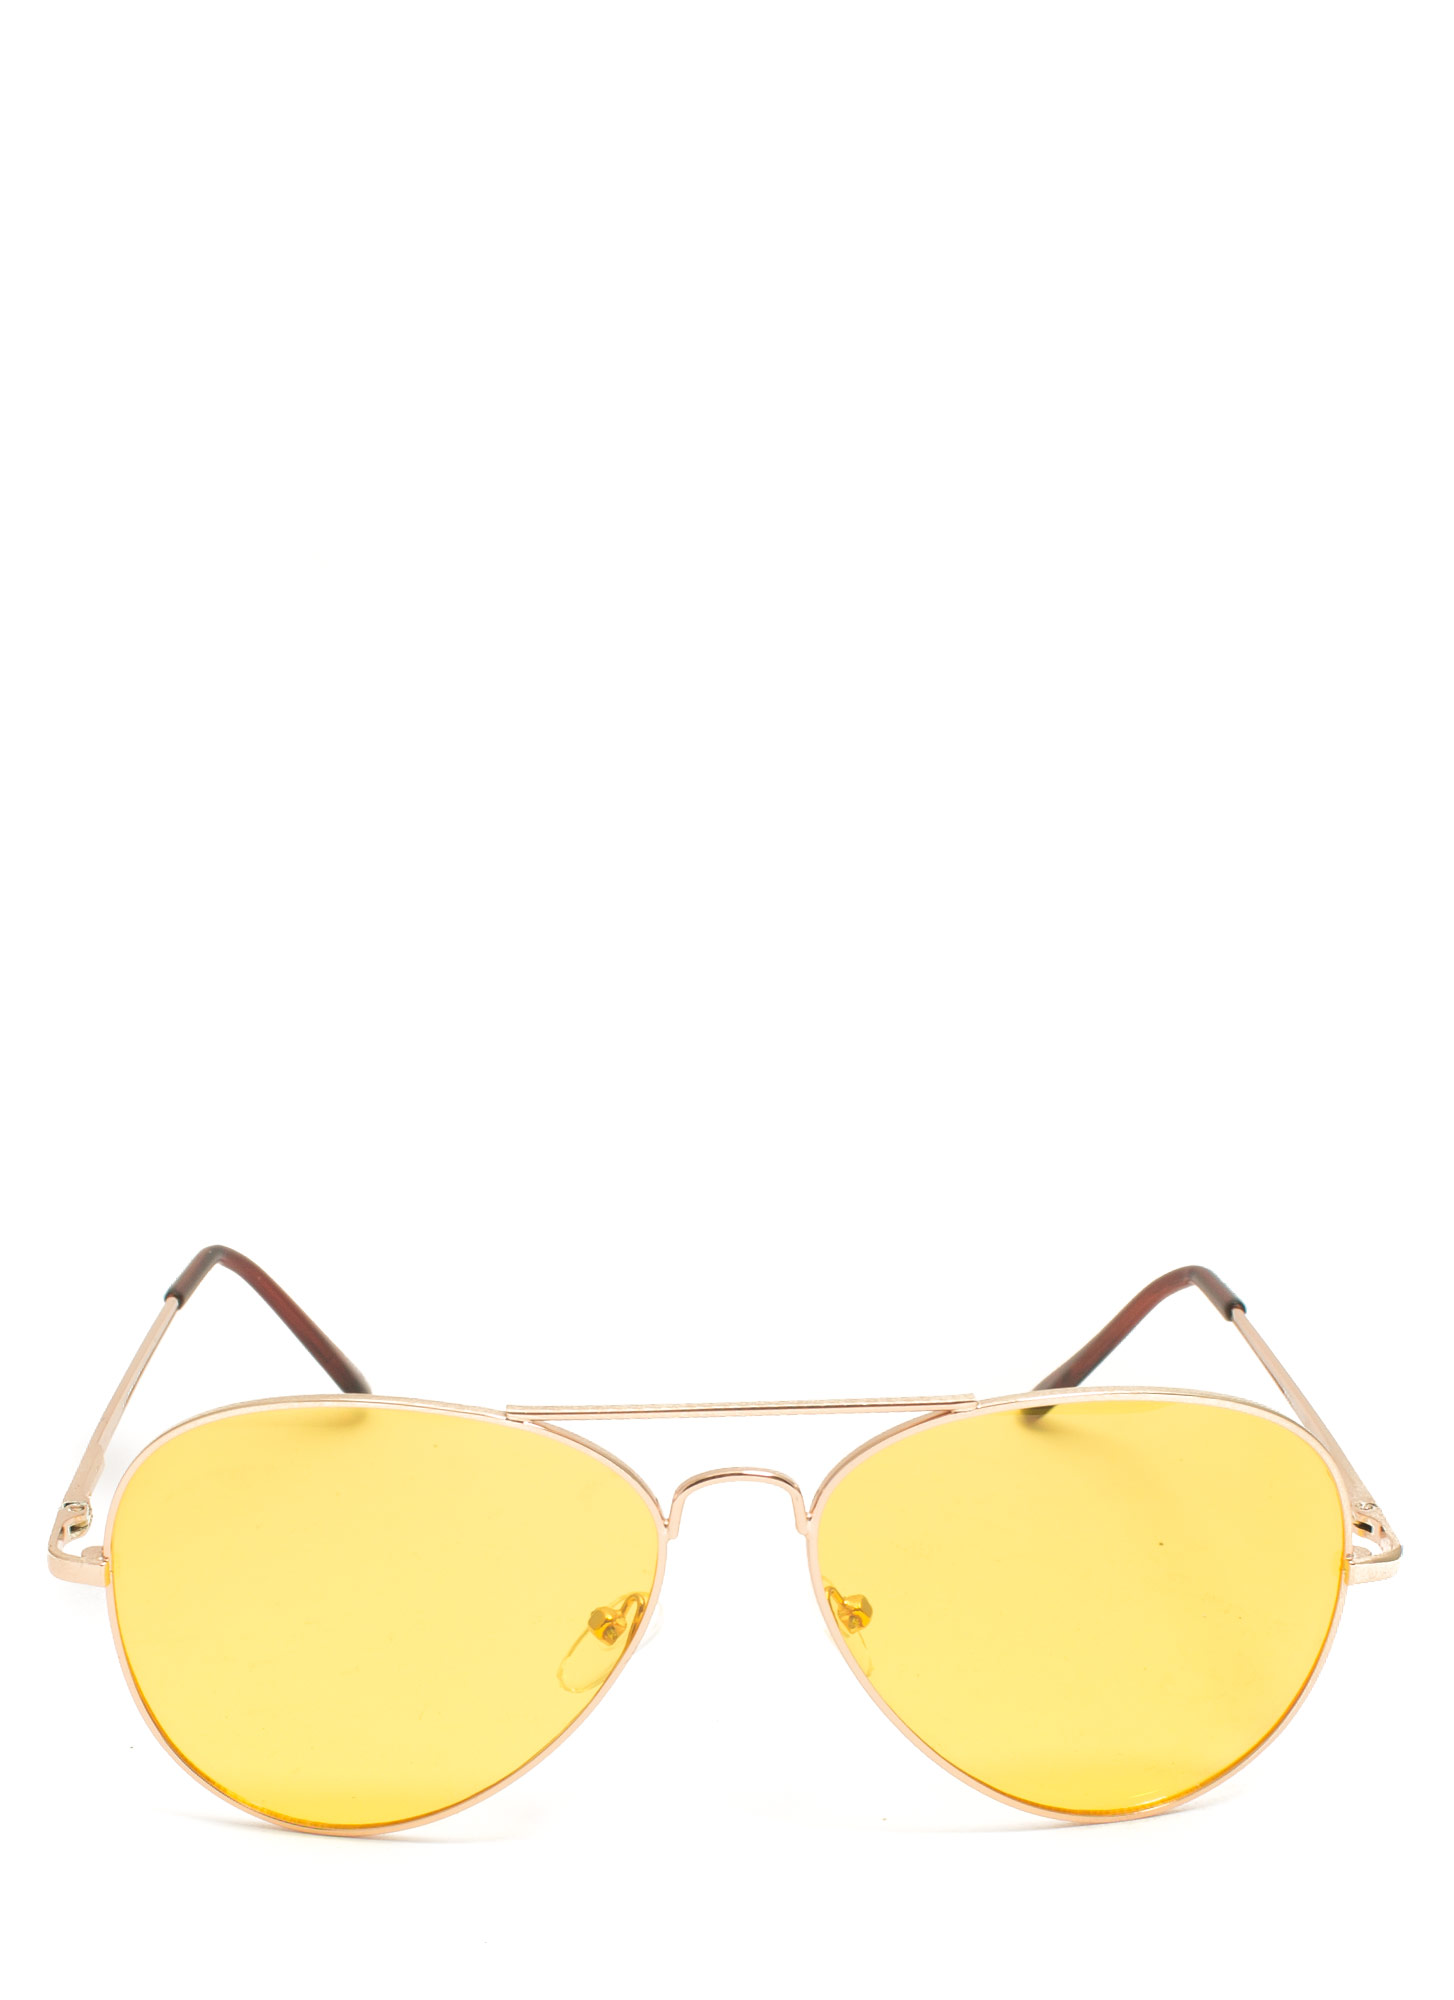 Color Daze Aviator Sunglasses YELLOWGOLD